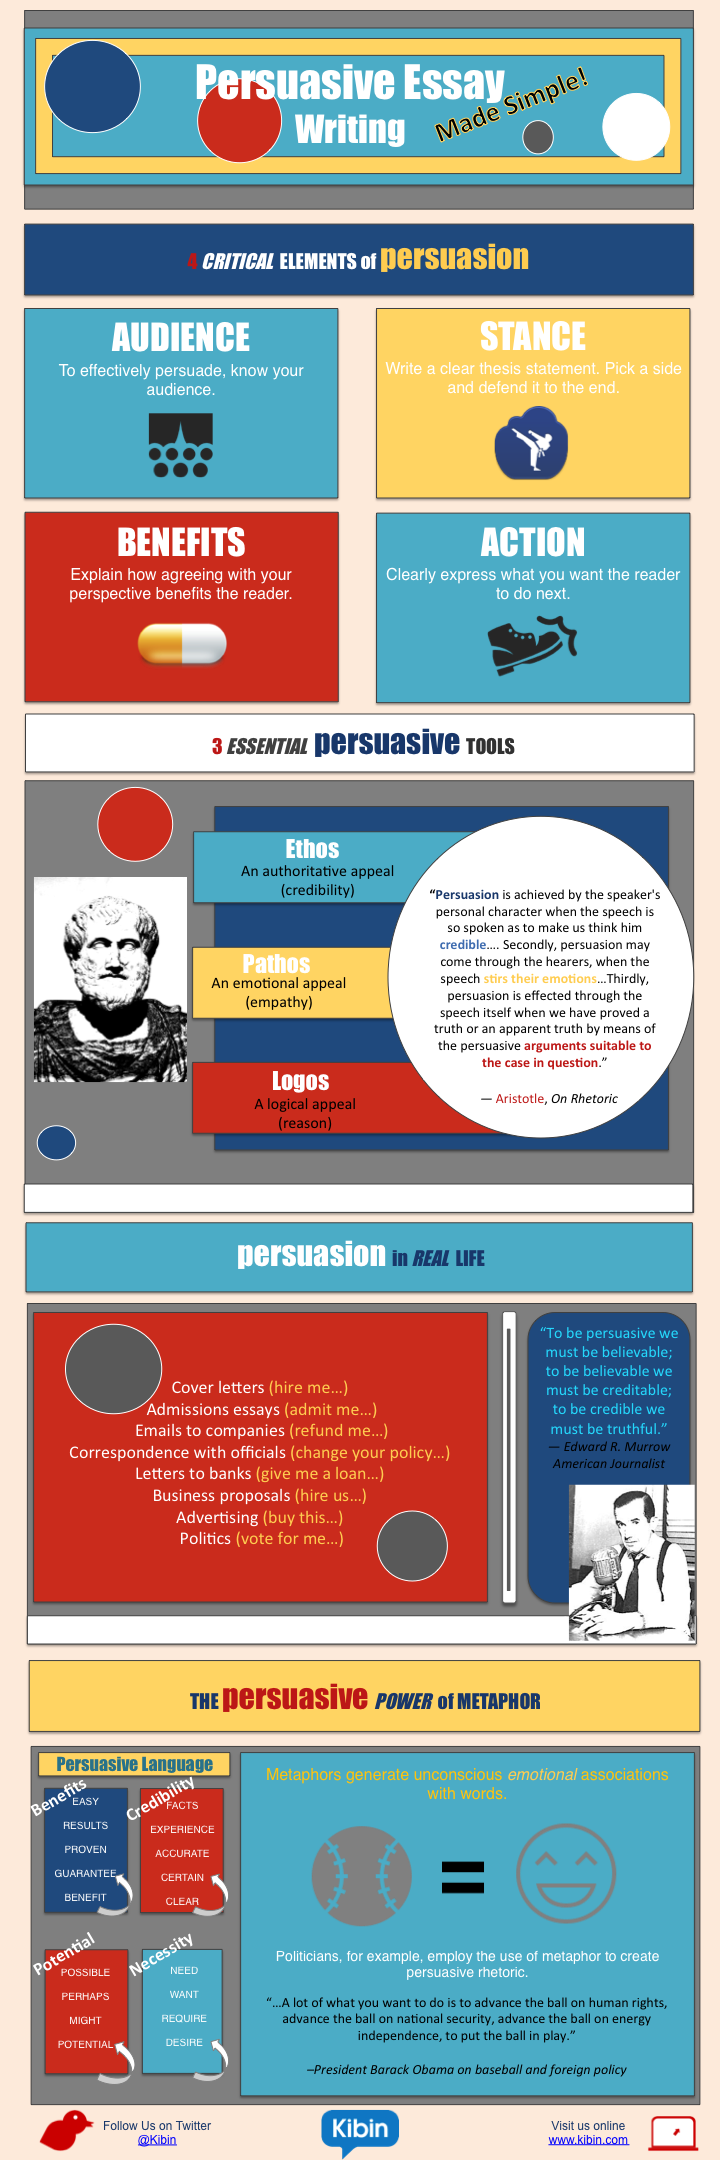 persuasive essay writing made simple infographic essay writing persuasive essay infographic